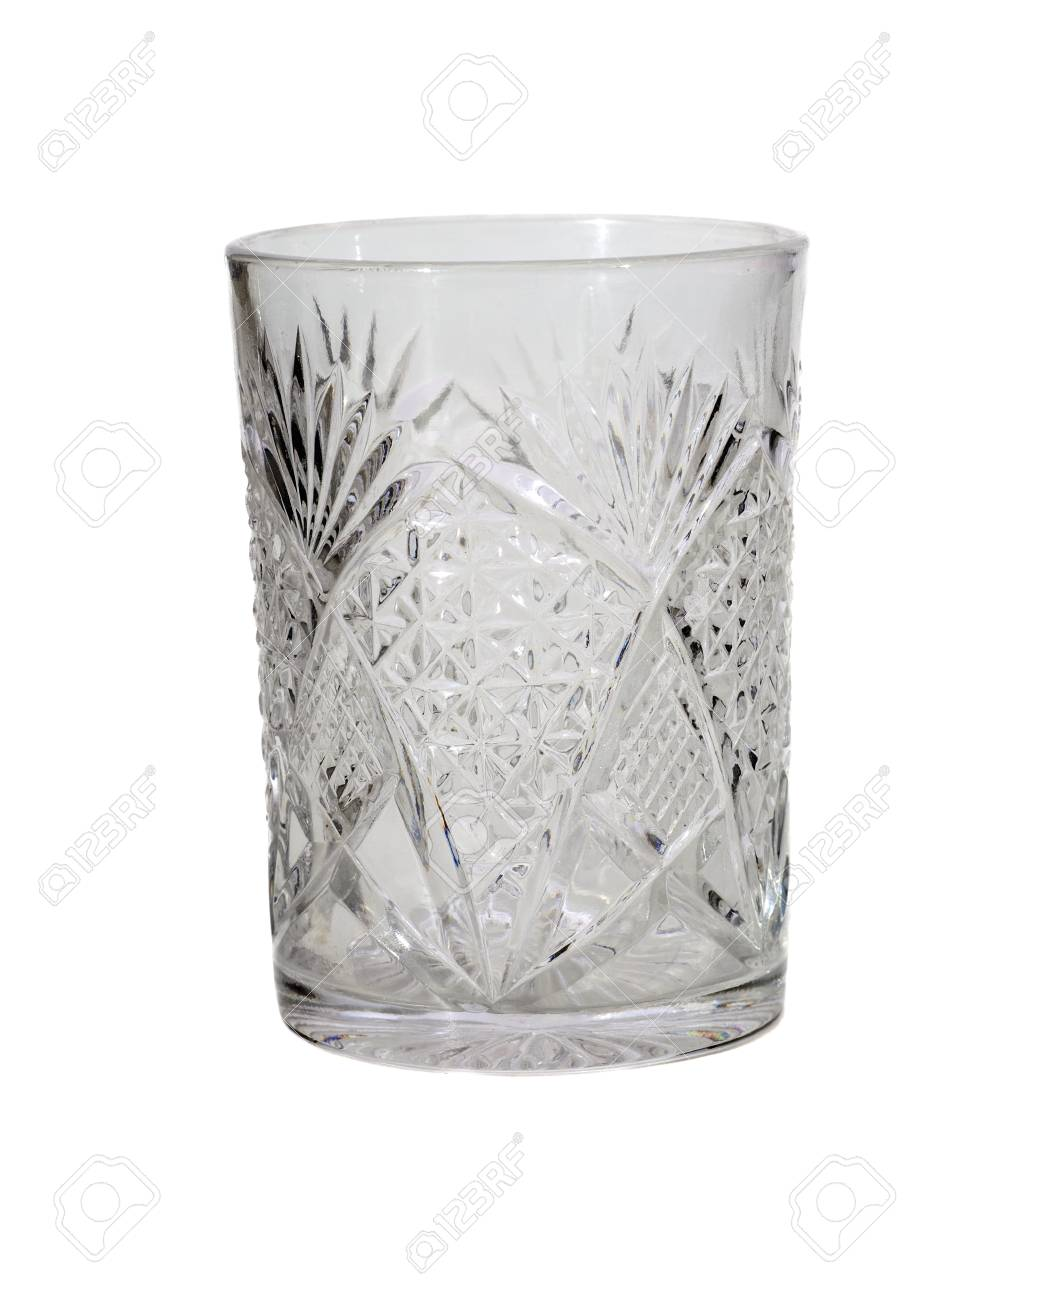 Water glass, isolated on white - 29766910